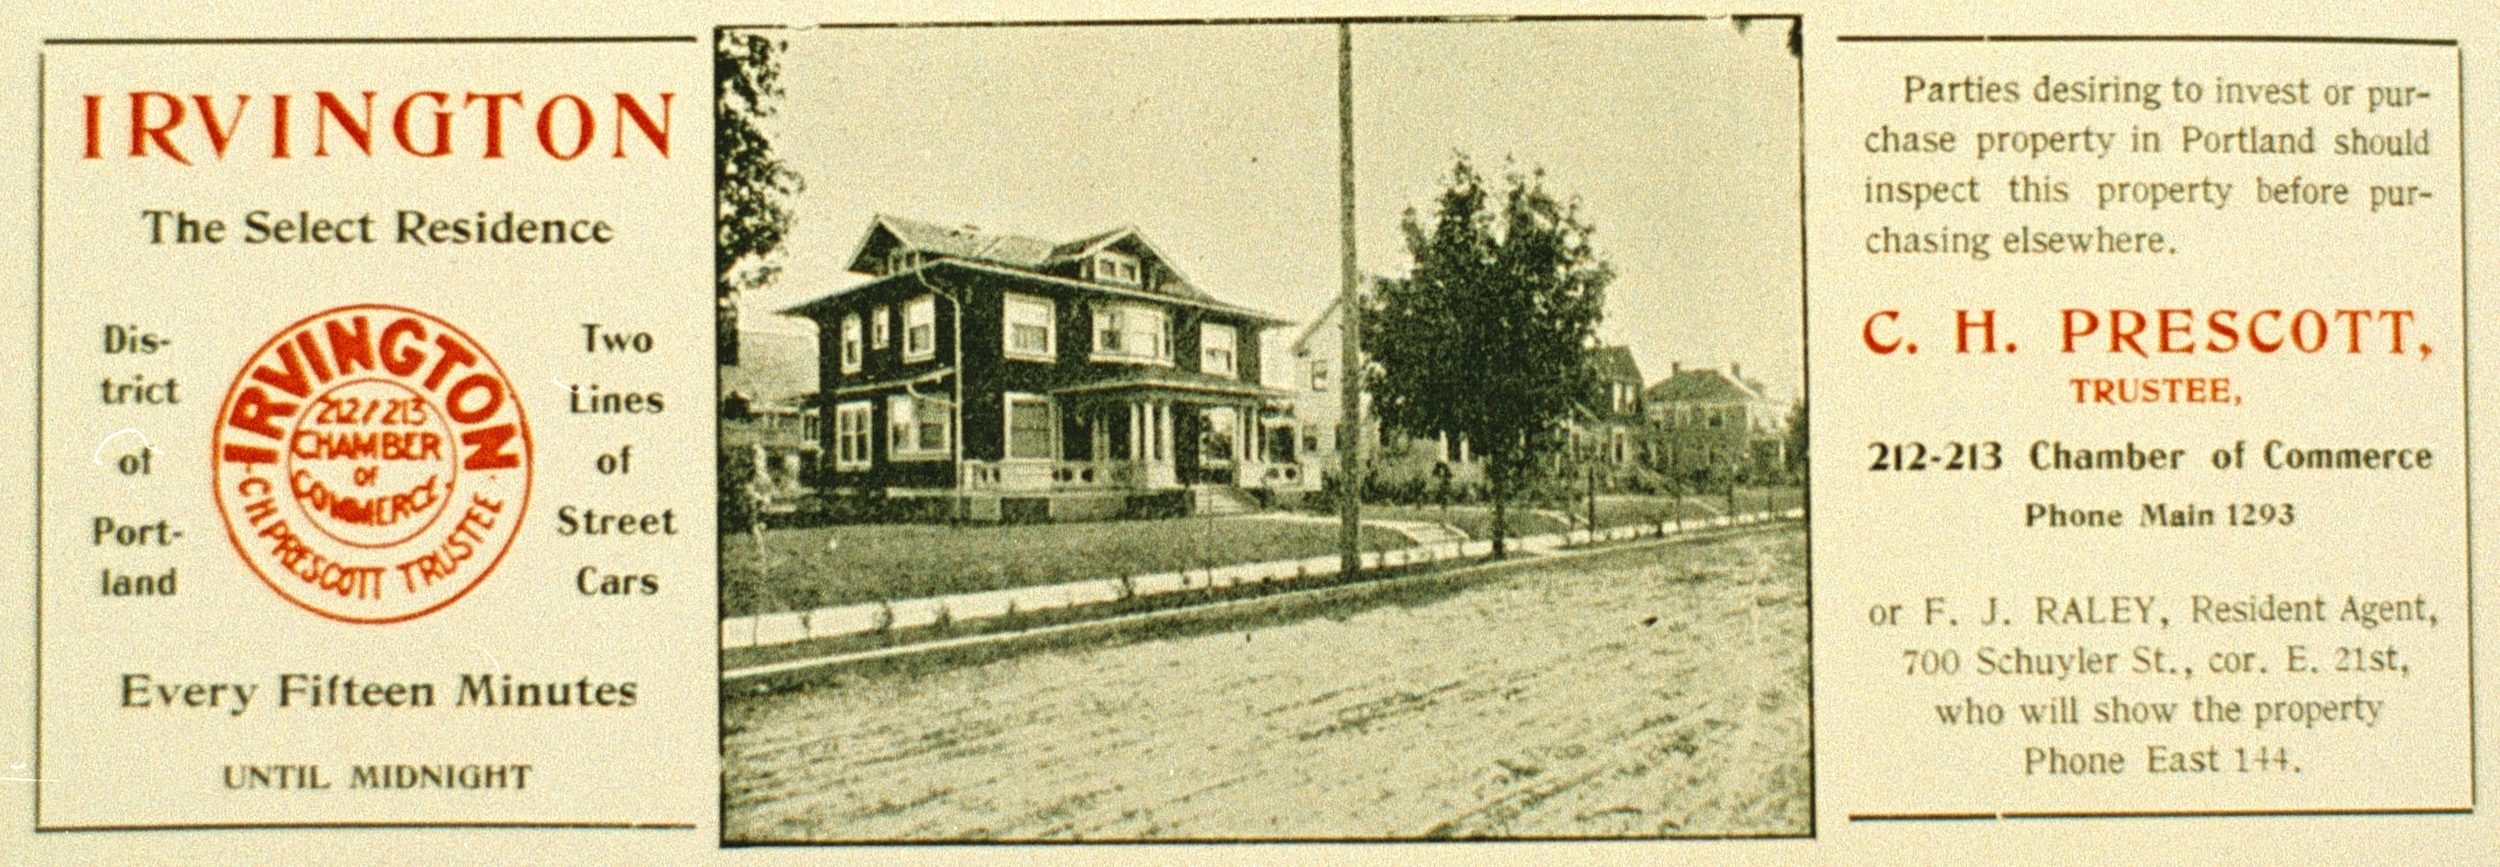 1912 ad promoting Irvington home sales